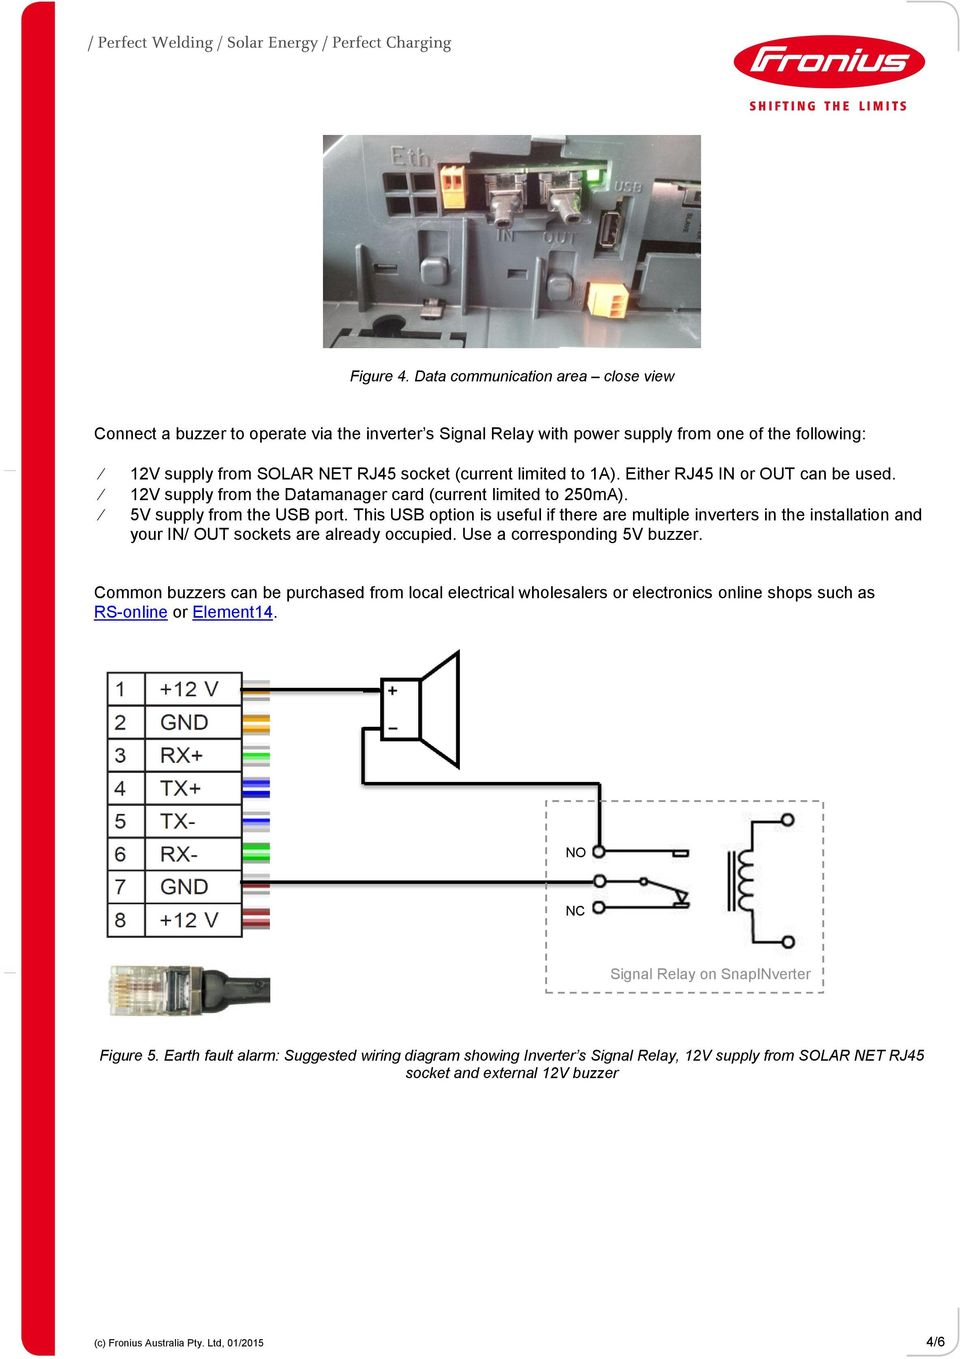 vw mk3 jetta alarm wiring diagram class b fire alarm